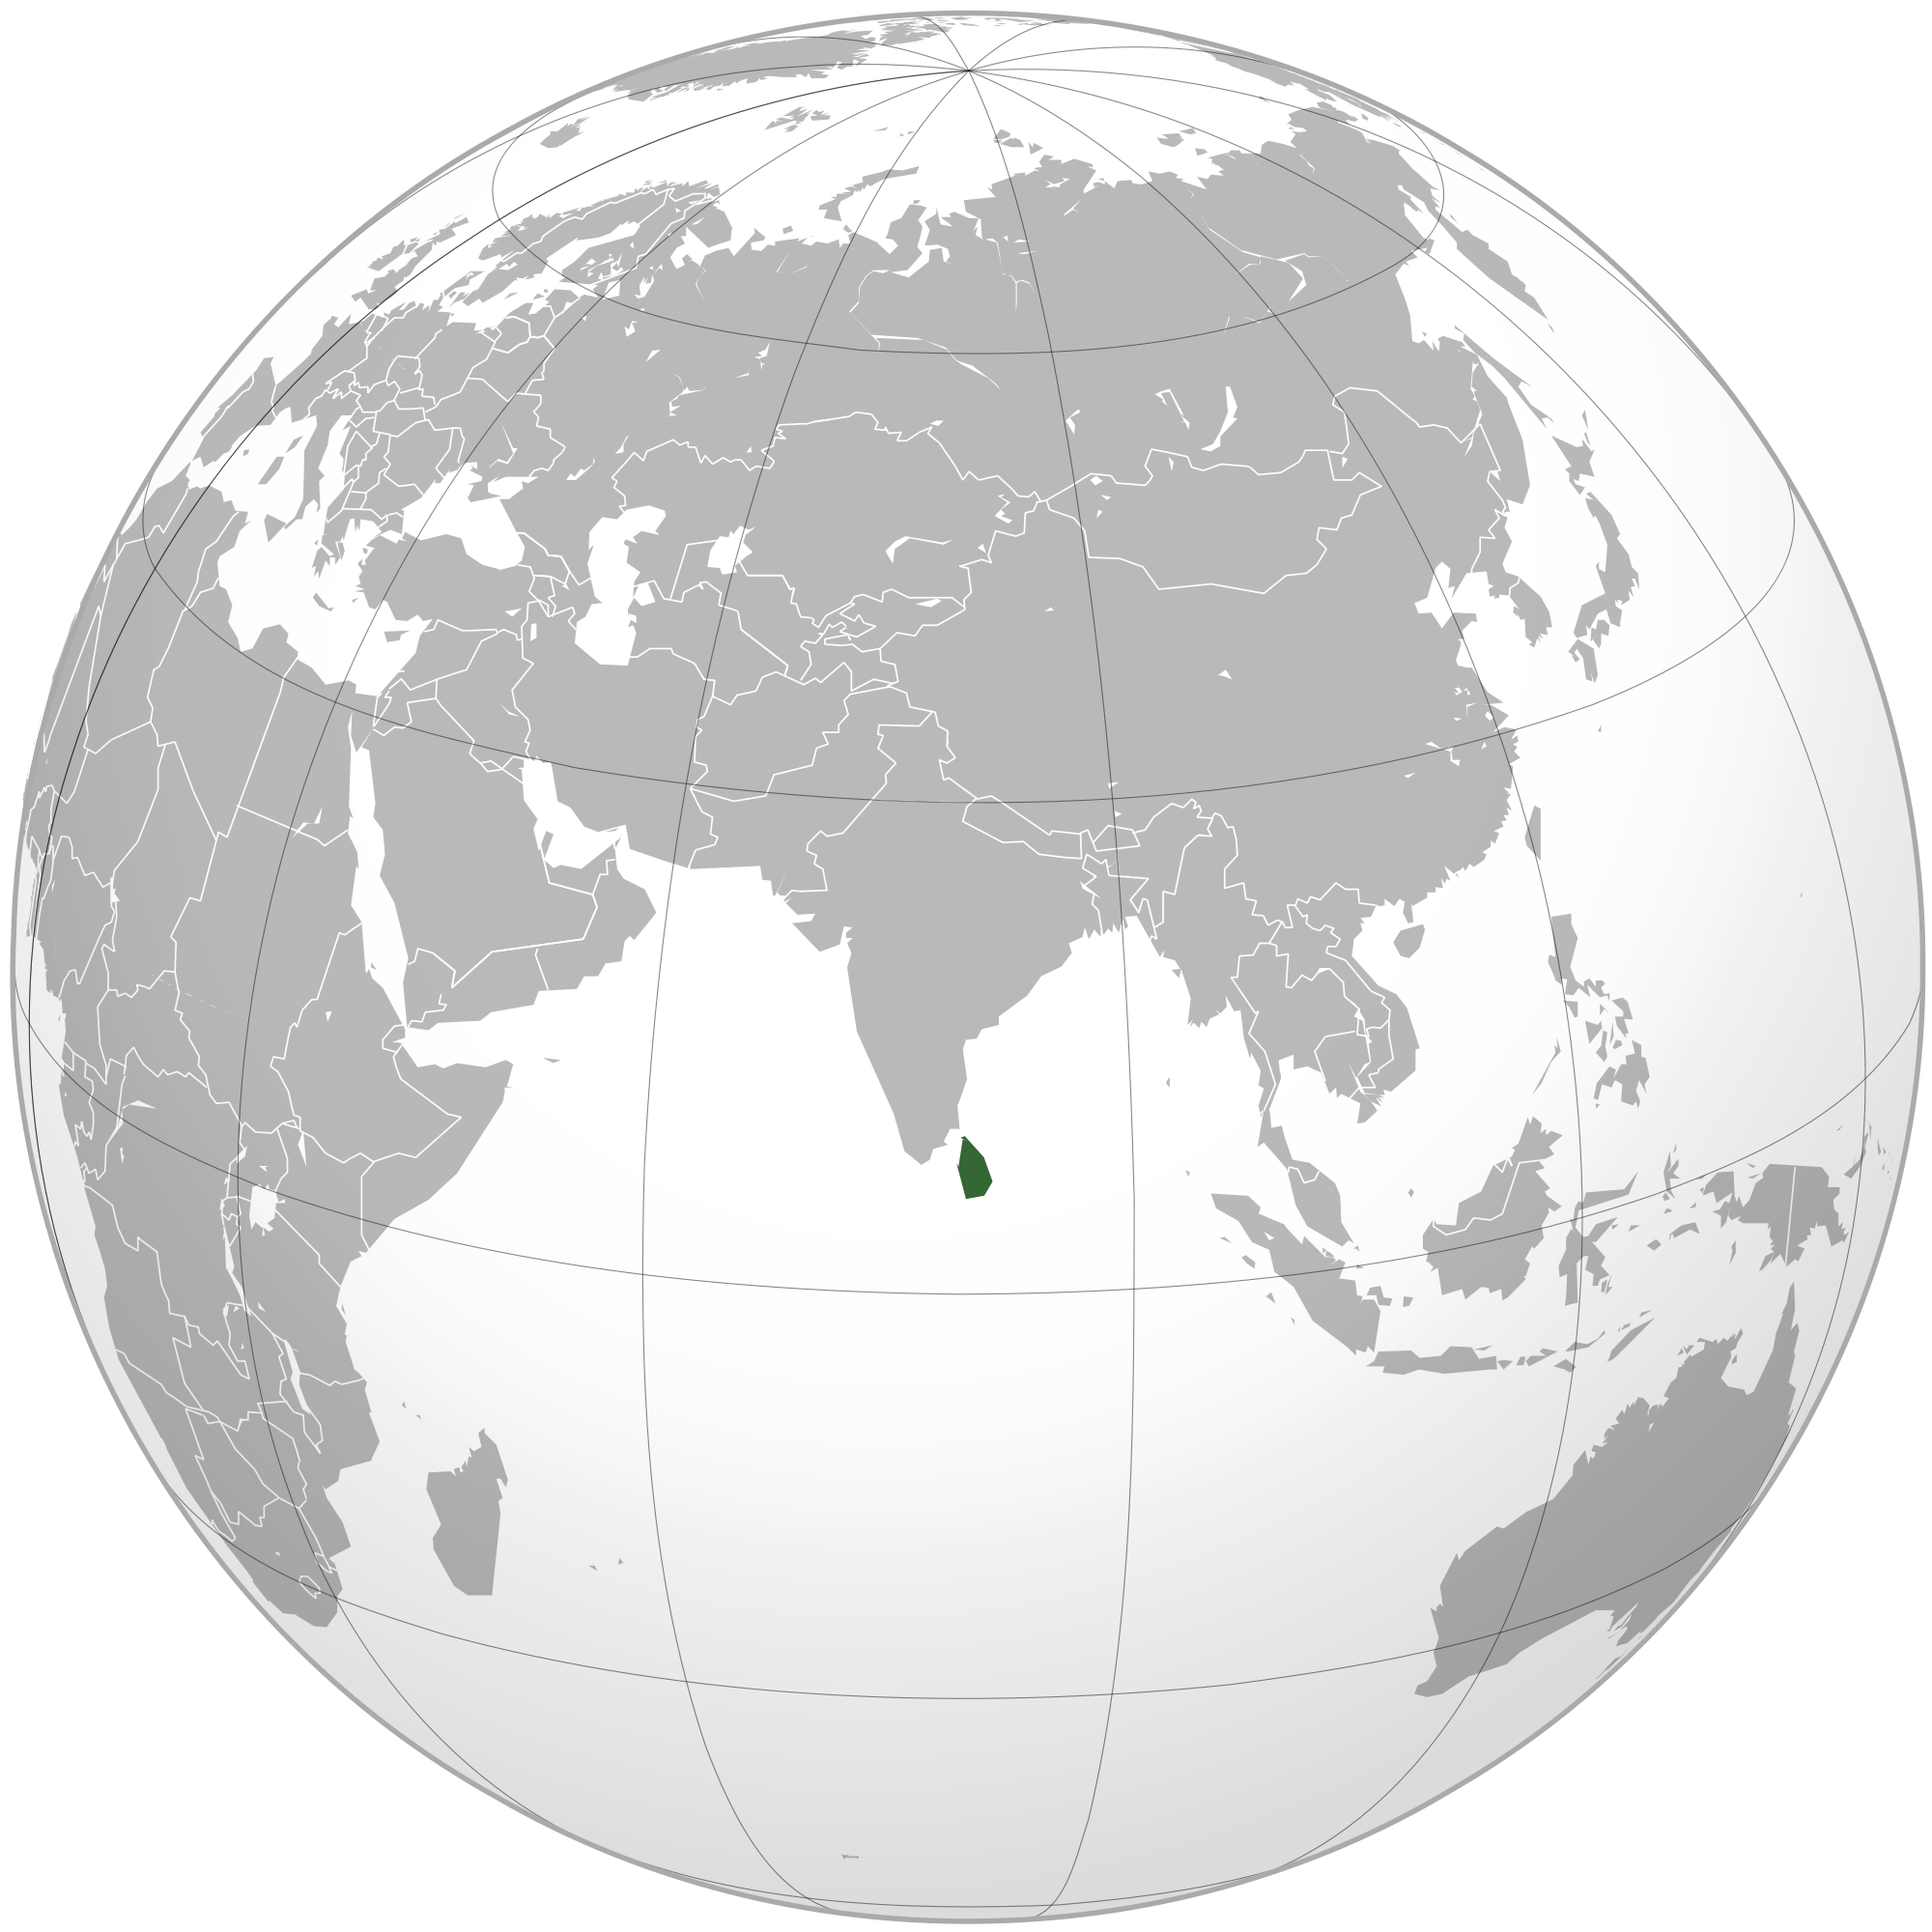 Location of the Sri Lanka in the World Map